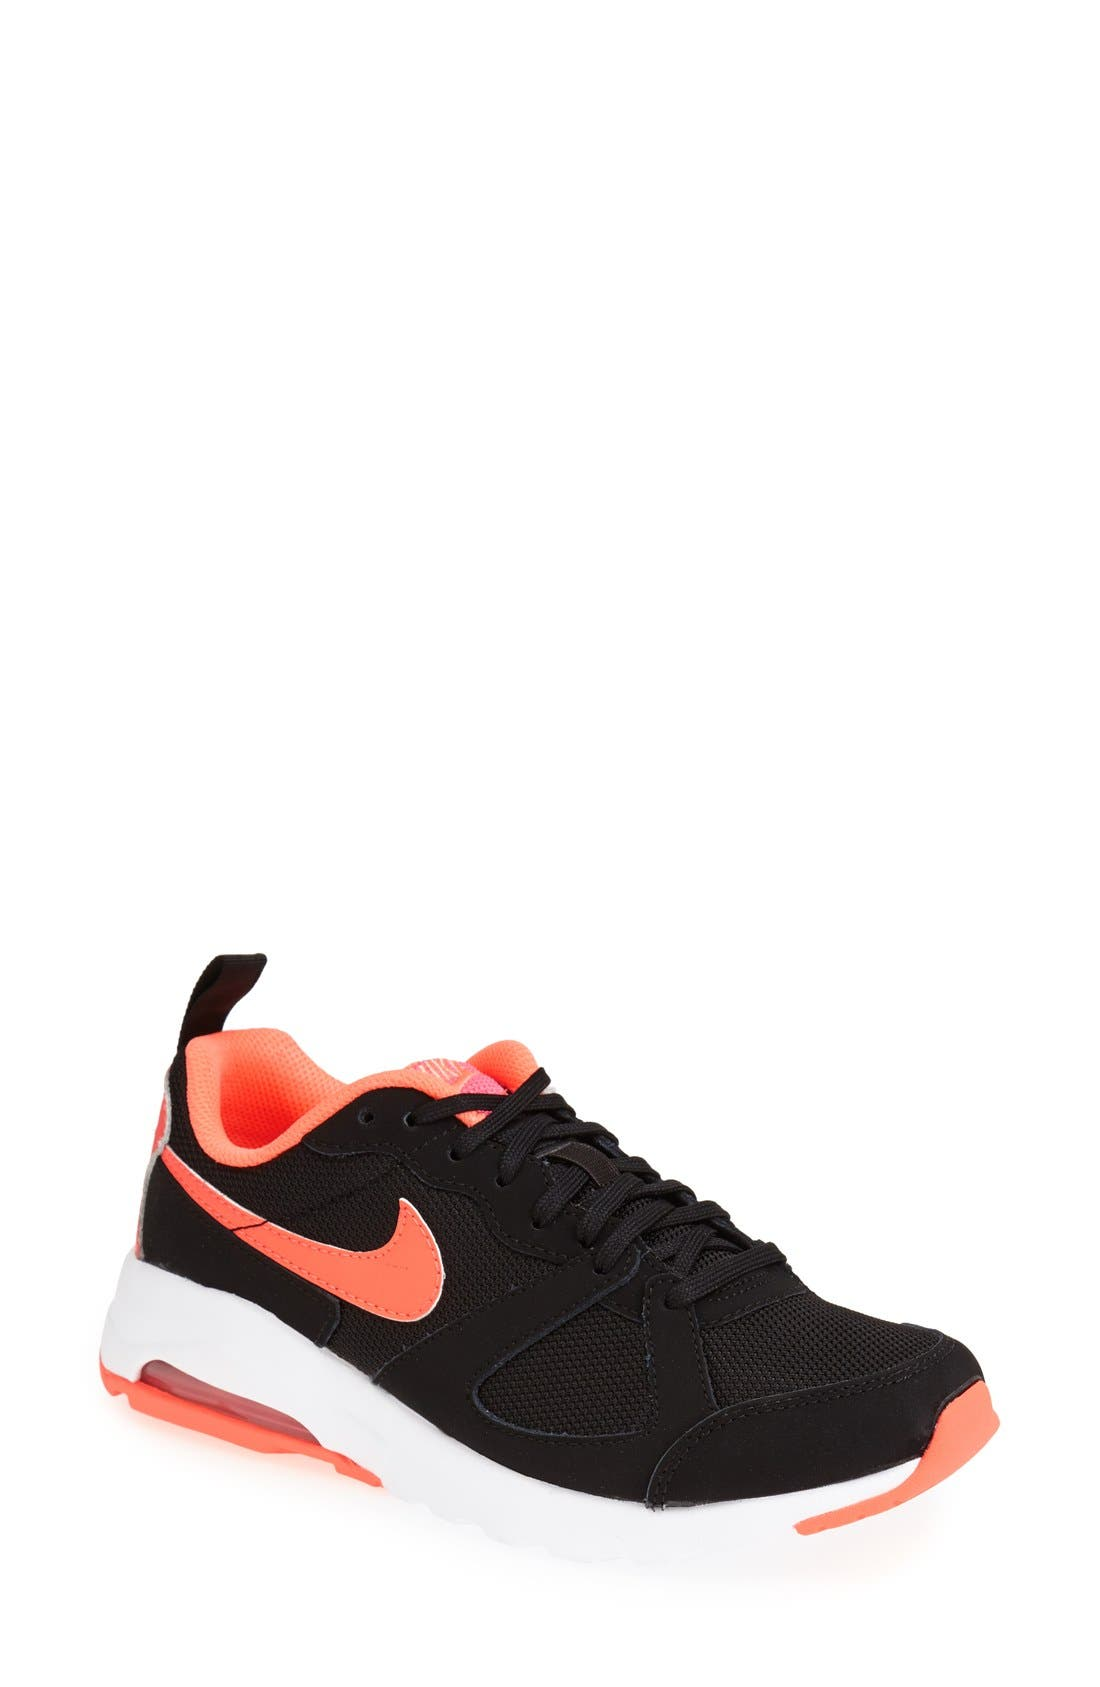 Alternate Image 1 Selected - Nike 'Air Max - Muse' Sneaker (Women)